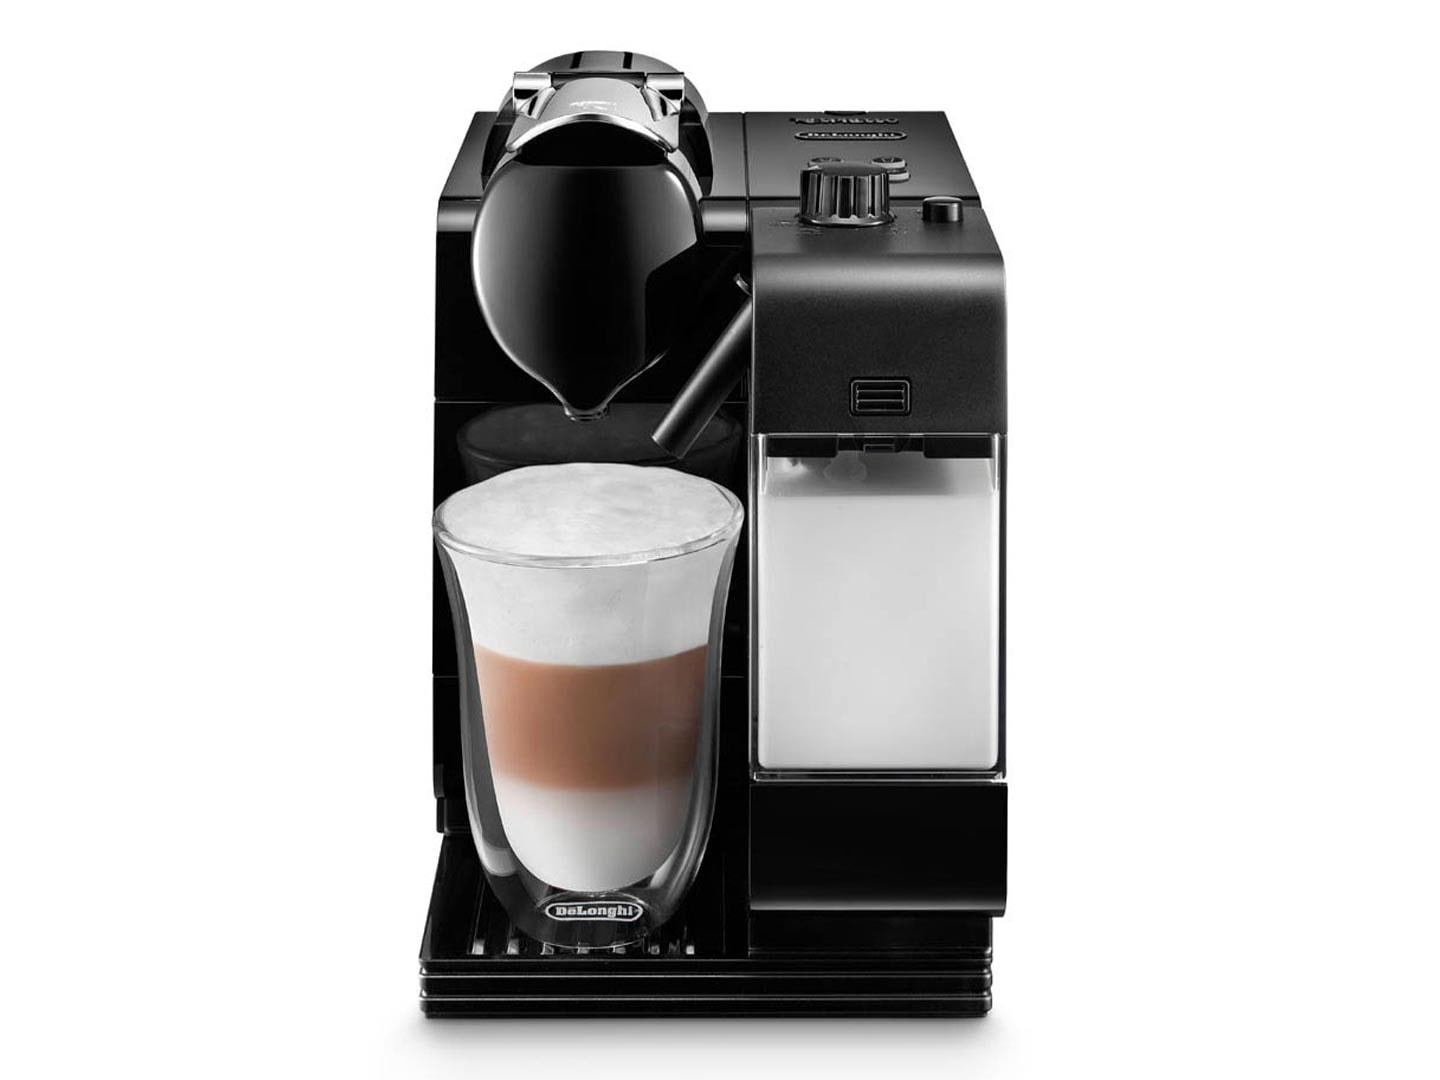 delonghi nespresso lattissima plus automatic coffee cappuccino maker machine. Black Bedroom Furniture Sets. Home Design Ideas